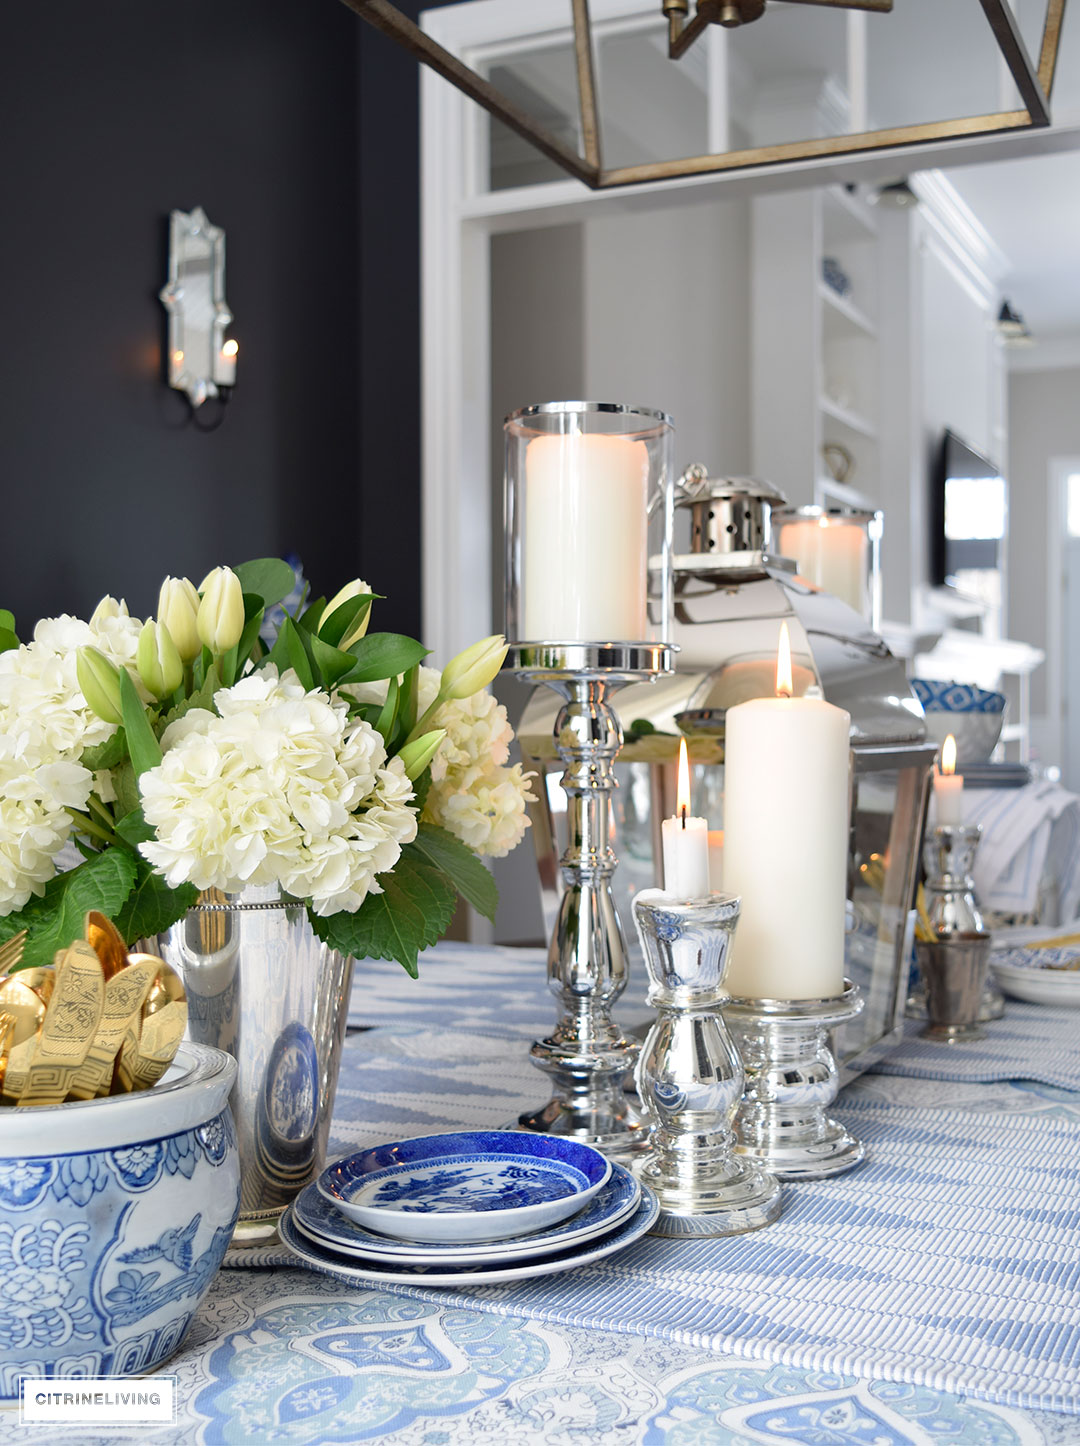 Layers of blue and white pattern with silver candleholders and gold flatware is perfect for a Spring table.